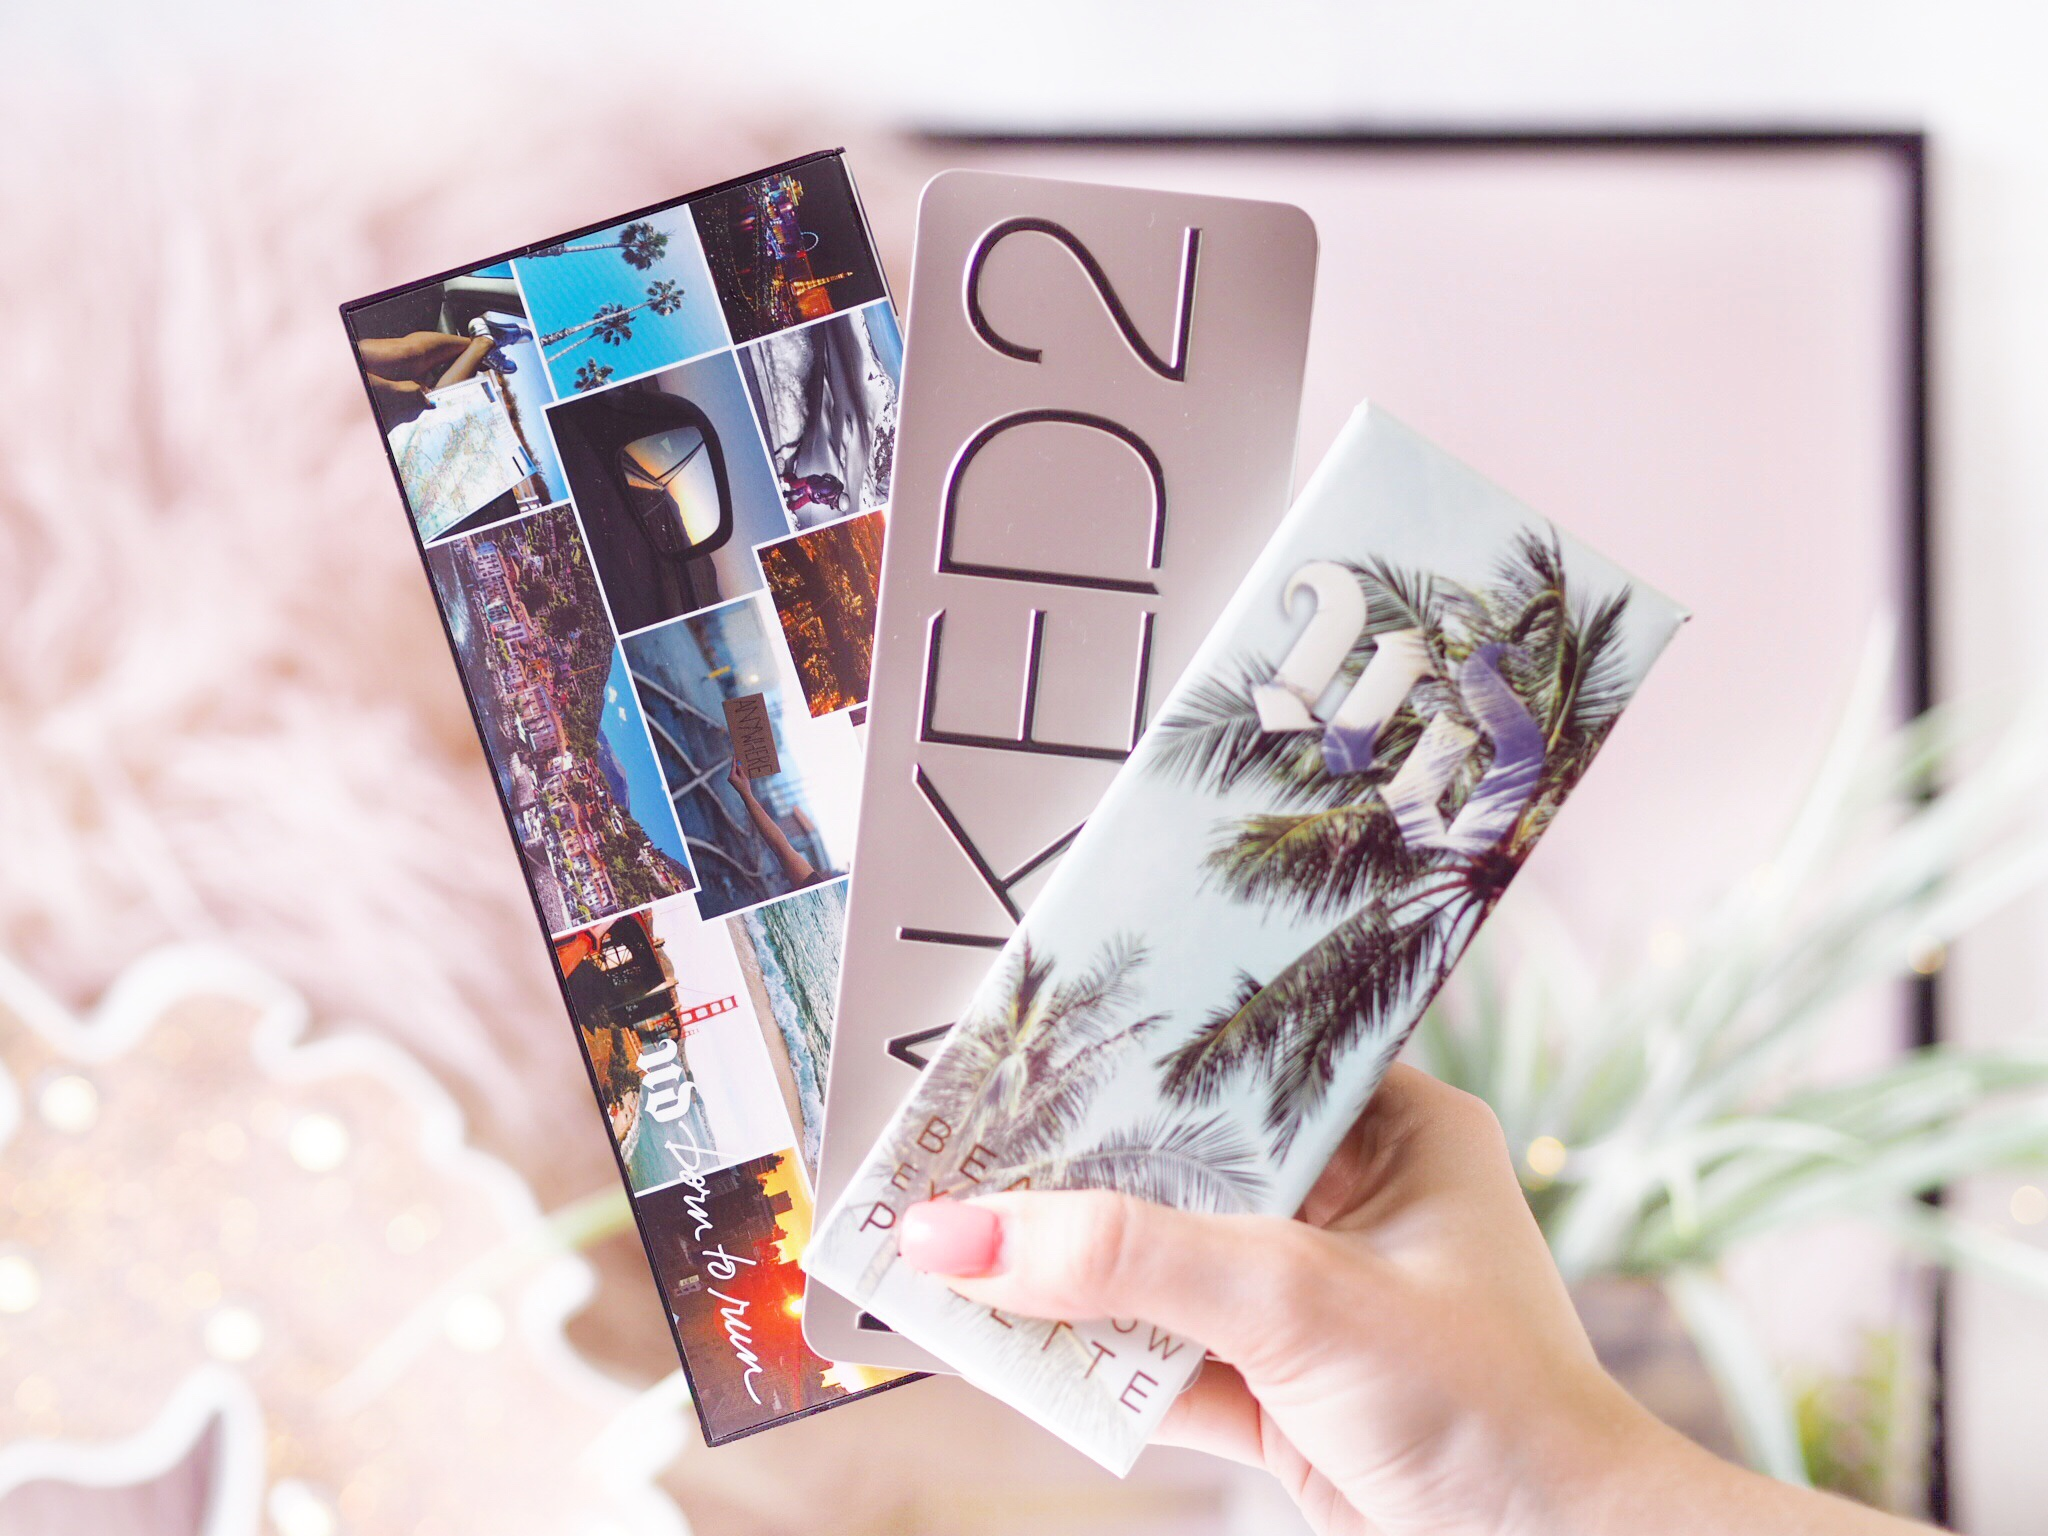 The Top Three Urban Decay Eyeshadow Palettes To Transition From Summer To Autumn